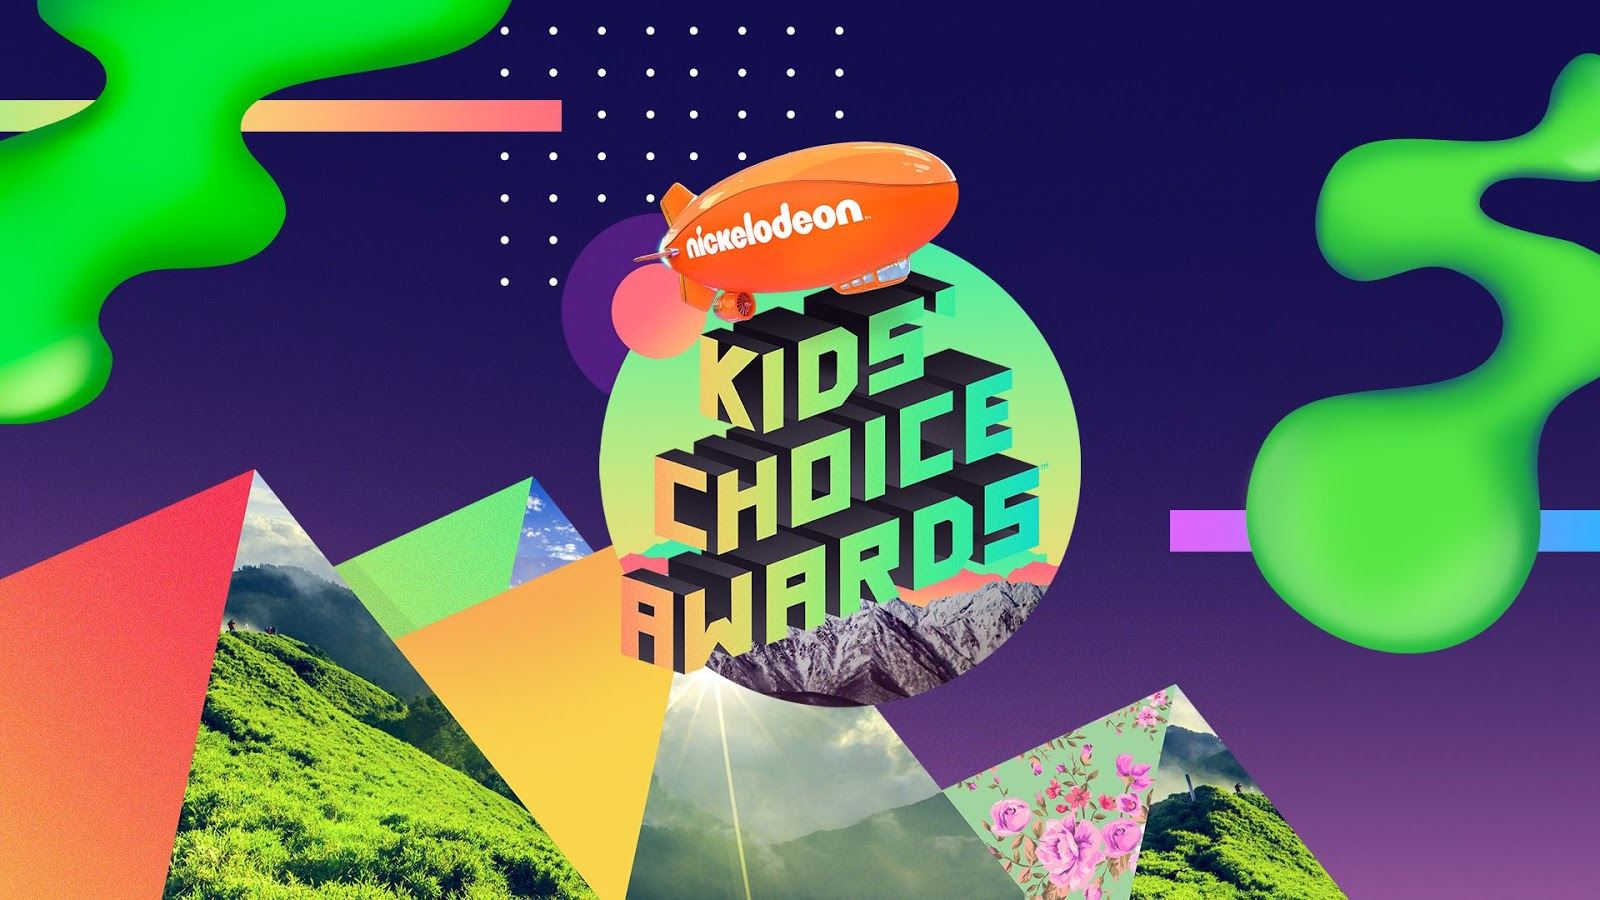 Kids Choice Awards Hd Wallpapers Wallpapers App